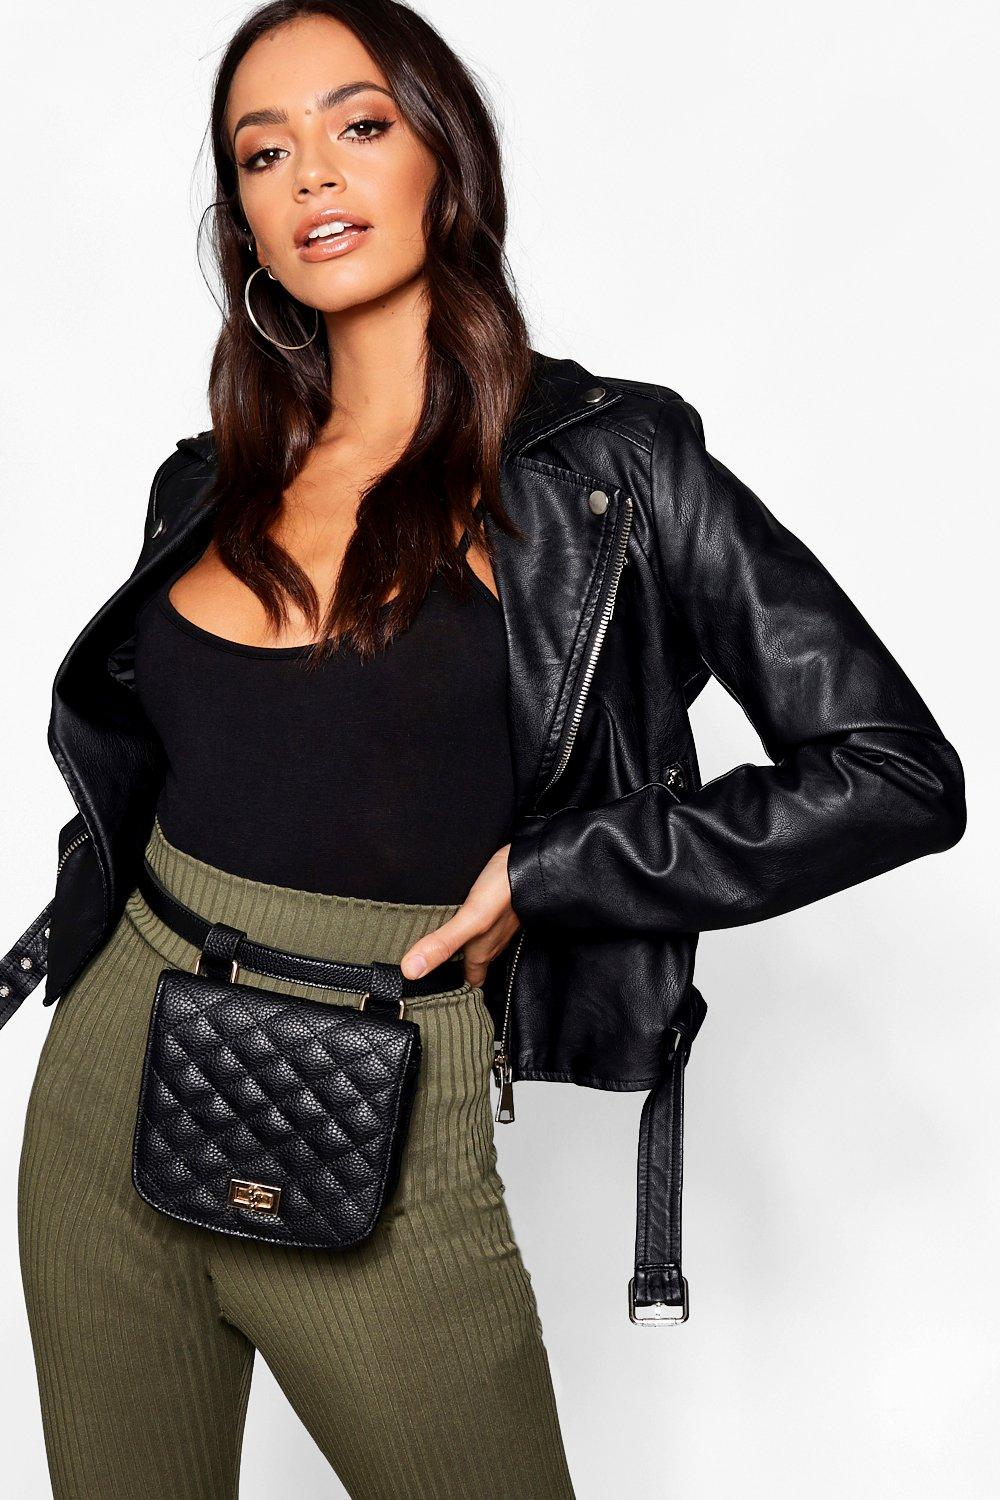 boohoo Womens Quilted Belt Bag - Black - One Size, Black